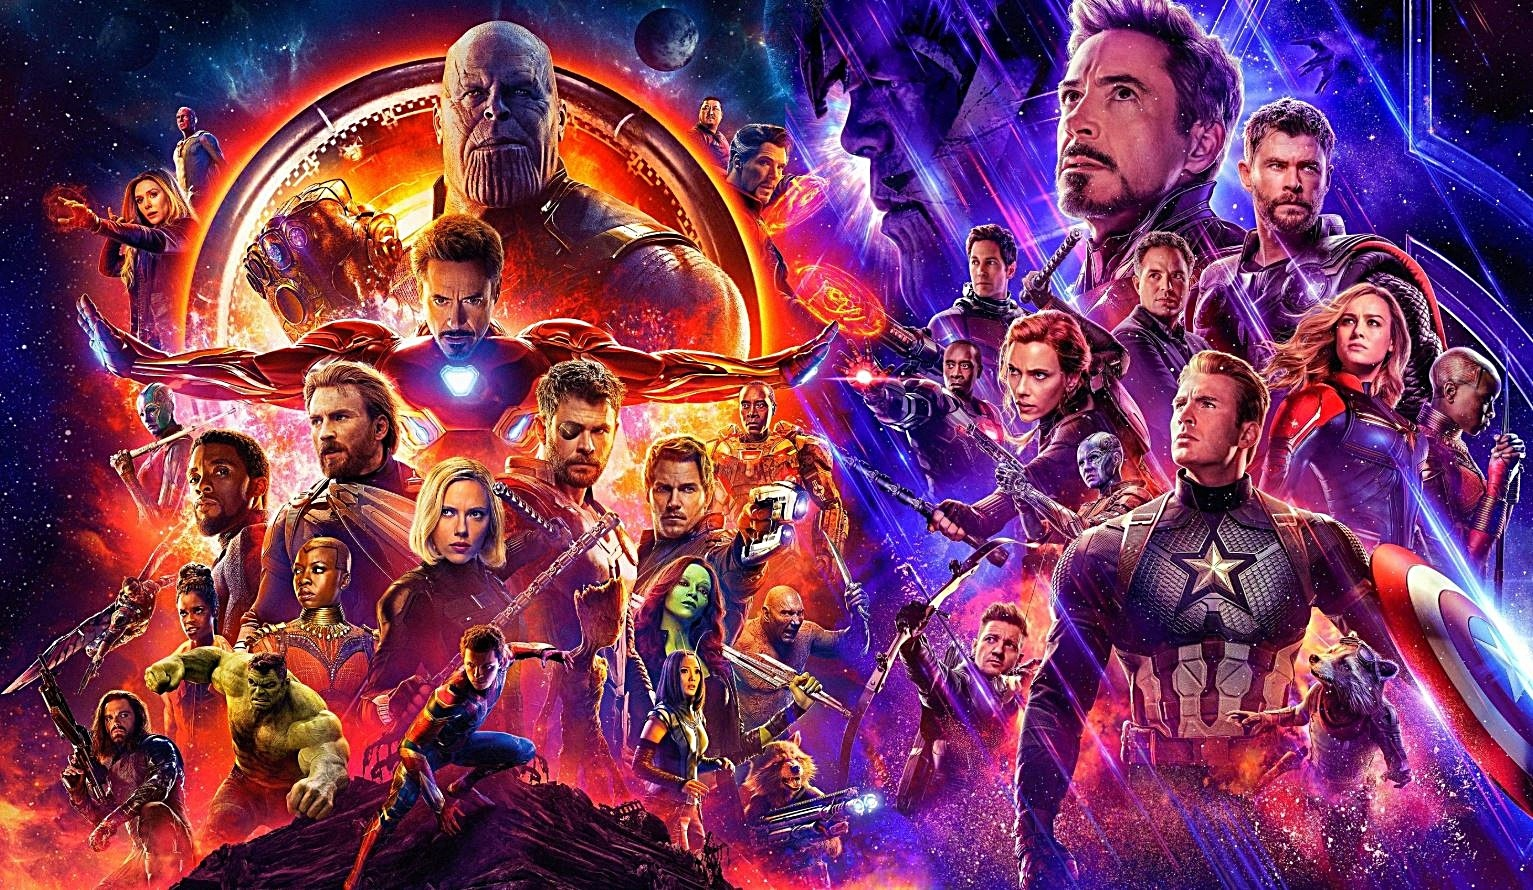 Movel Moveis Amc Showing All 22 Marvel Movies In Massive Marathon Age Of The Nerd